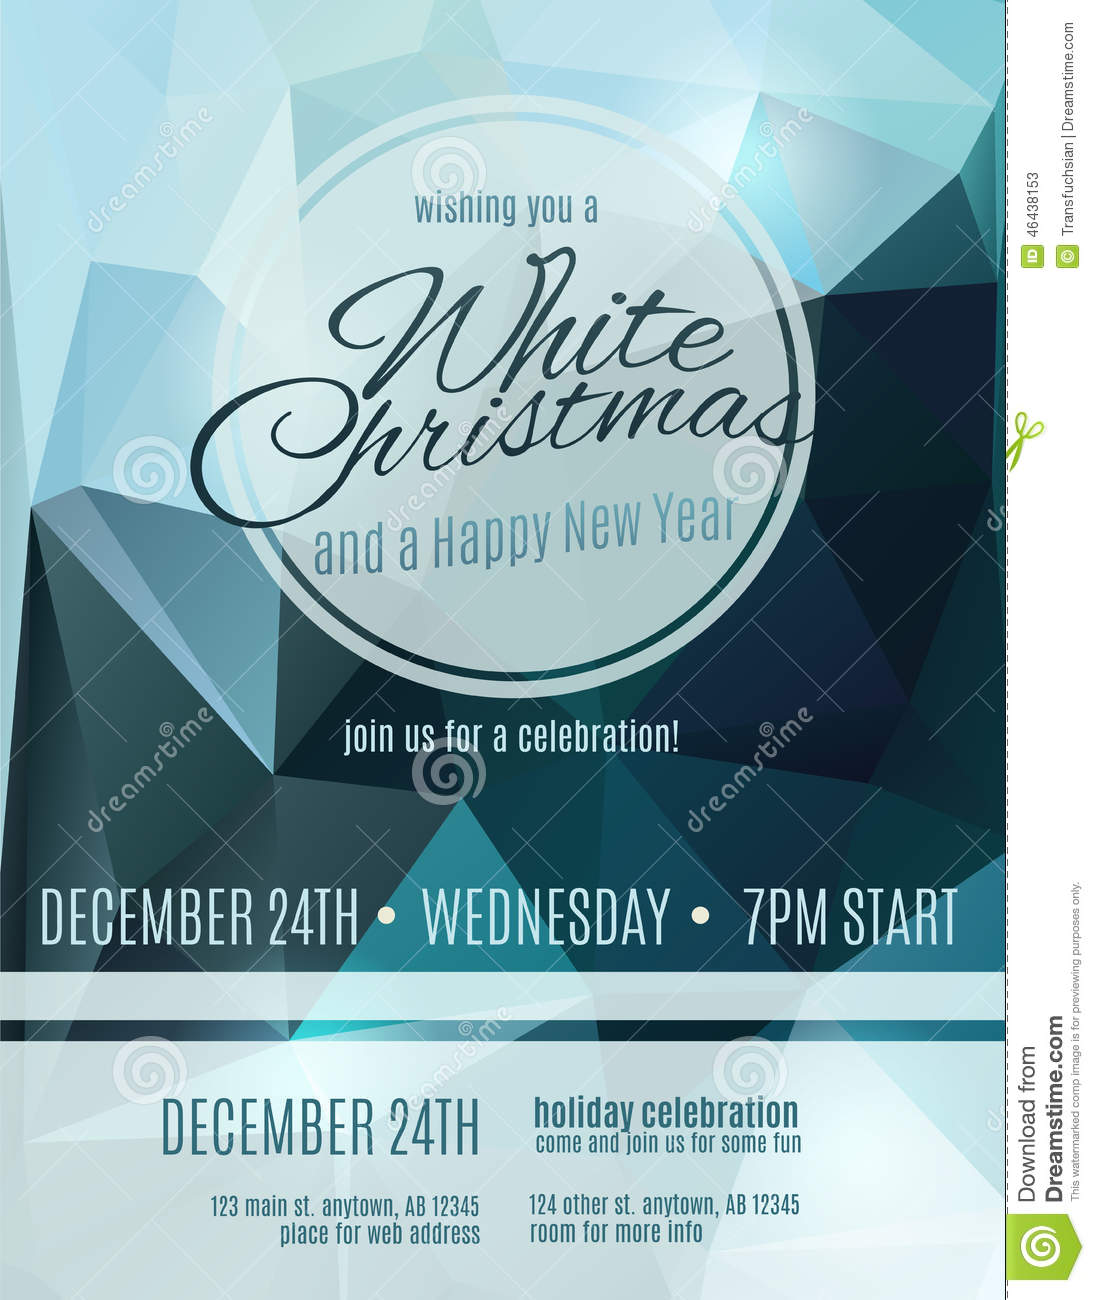 Elegant White Christmas Party Flyer Vector Image 46438153 – Elegant Holiday Party Invitations